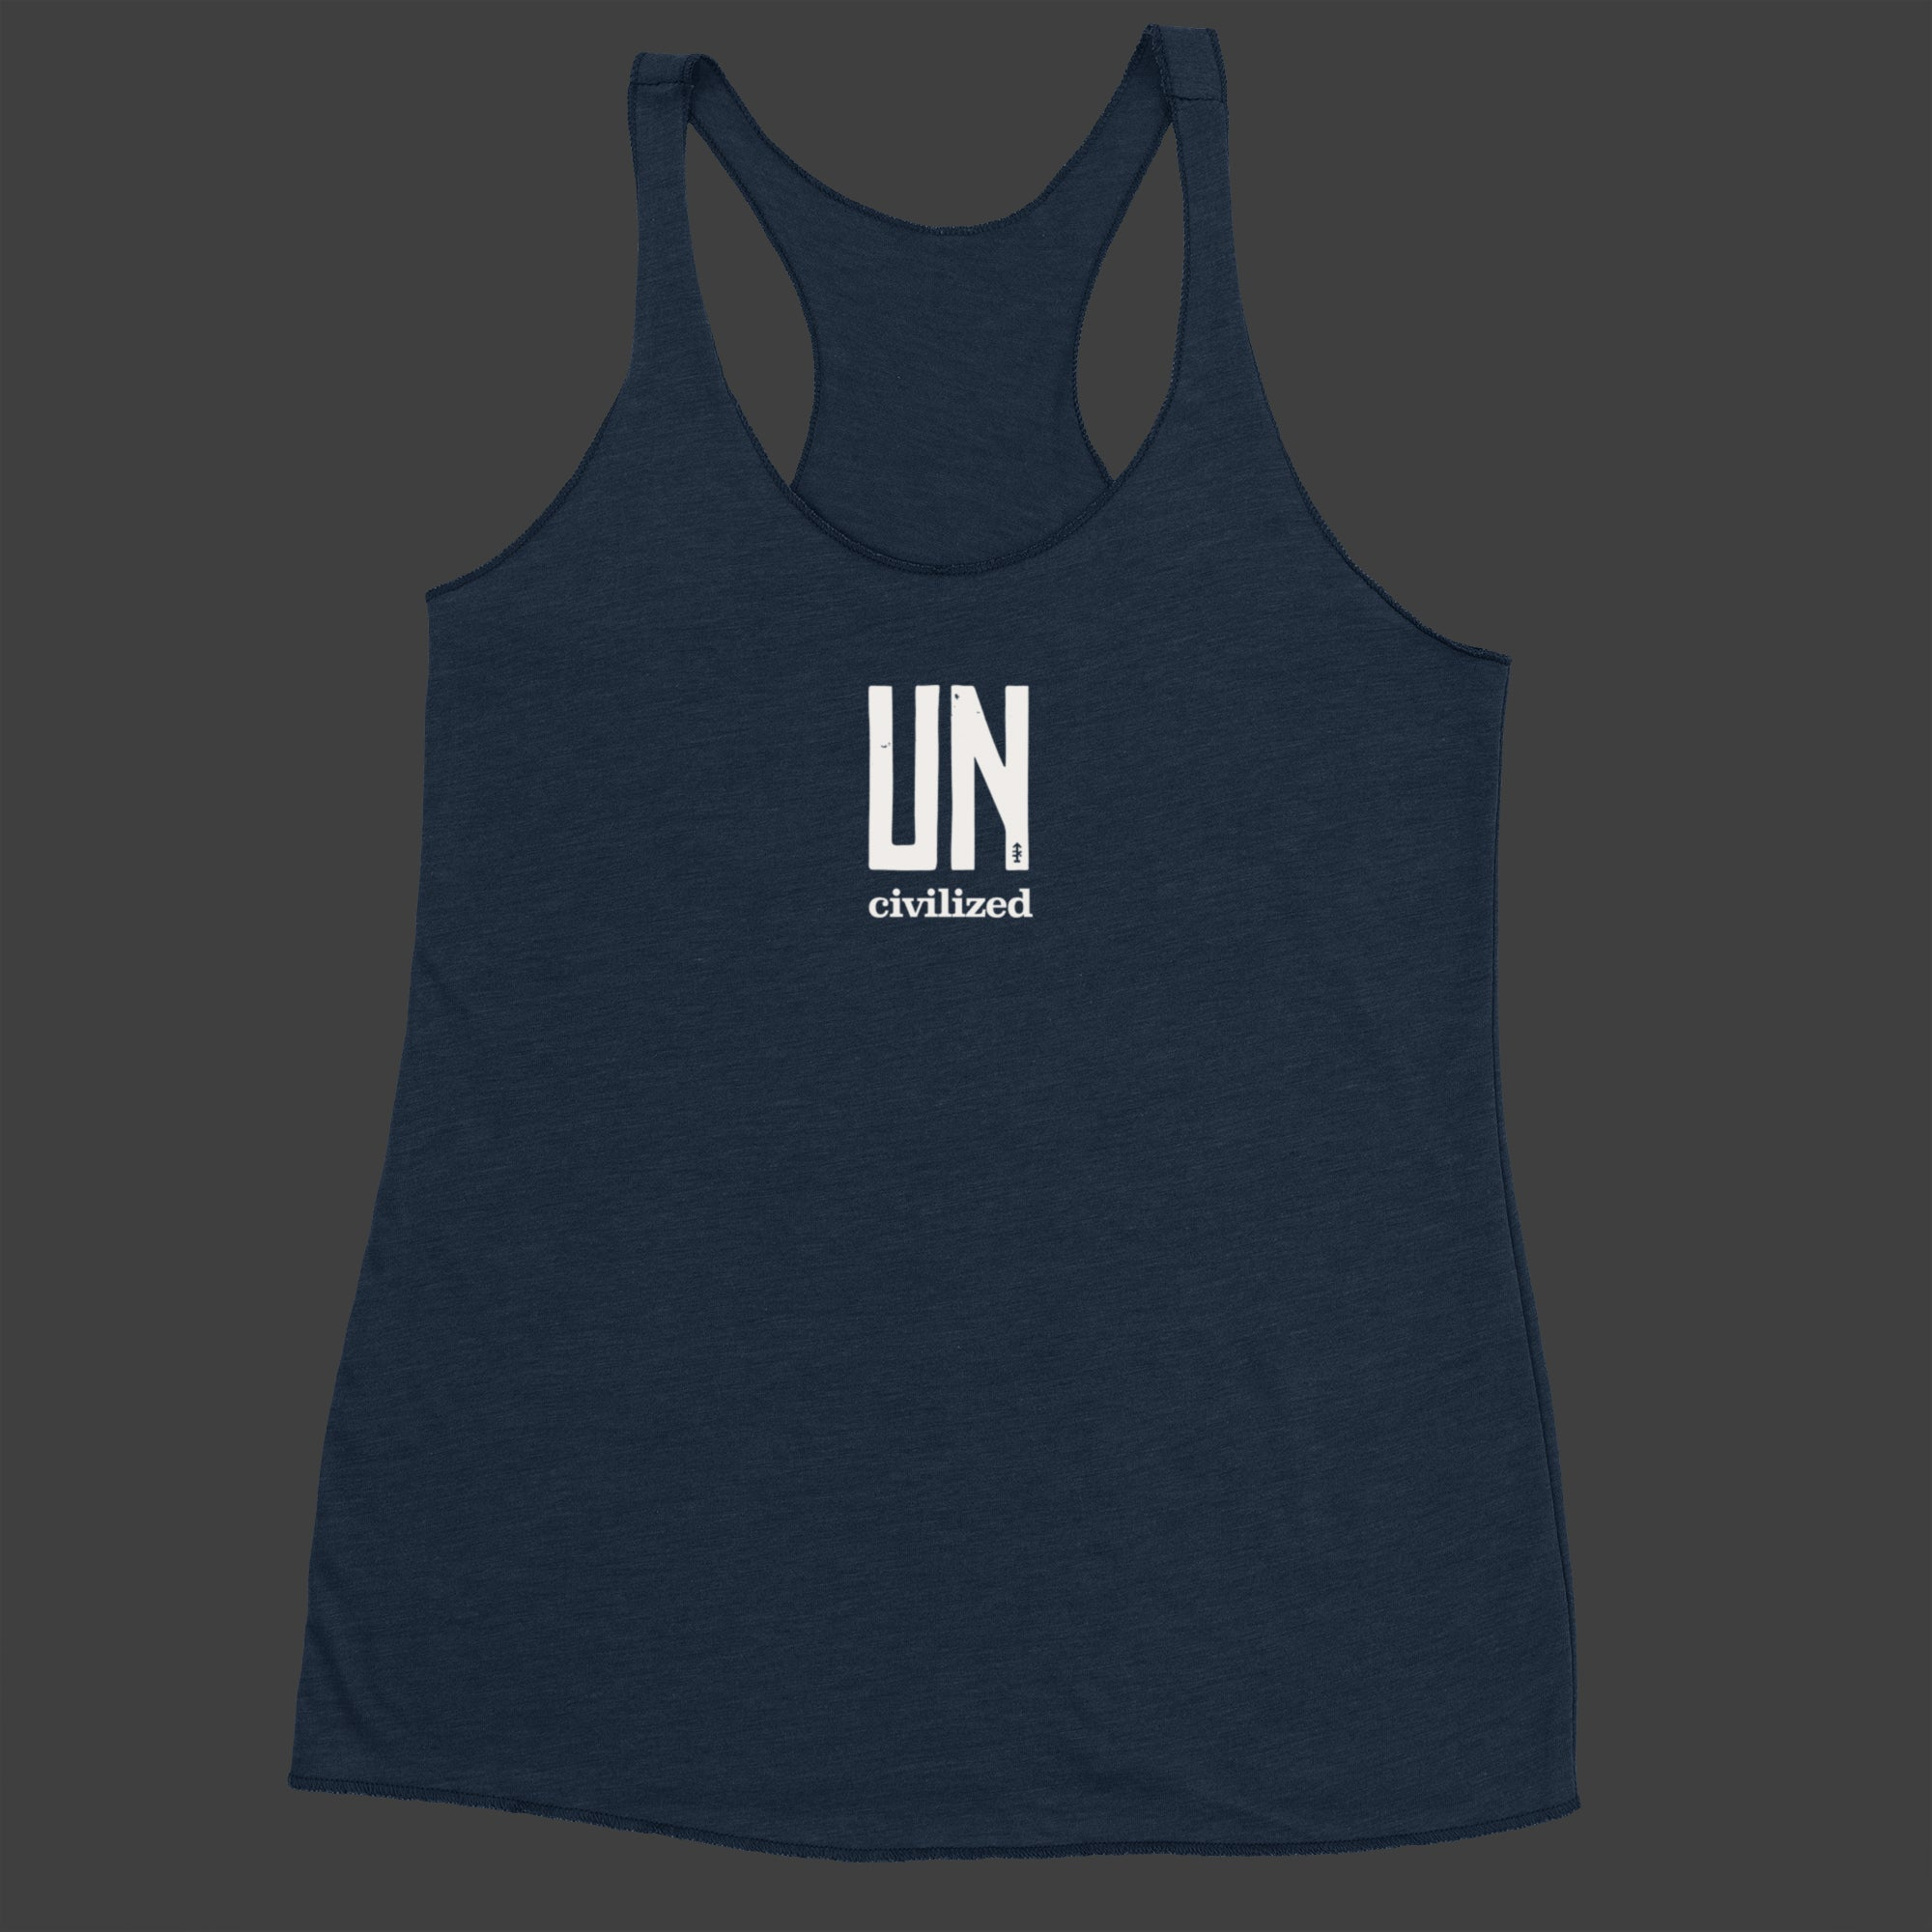 Women's UNcivilized Racerback Tank (Navy)